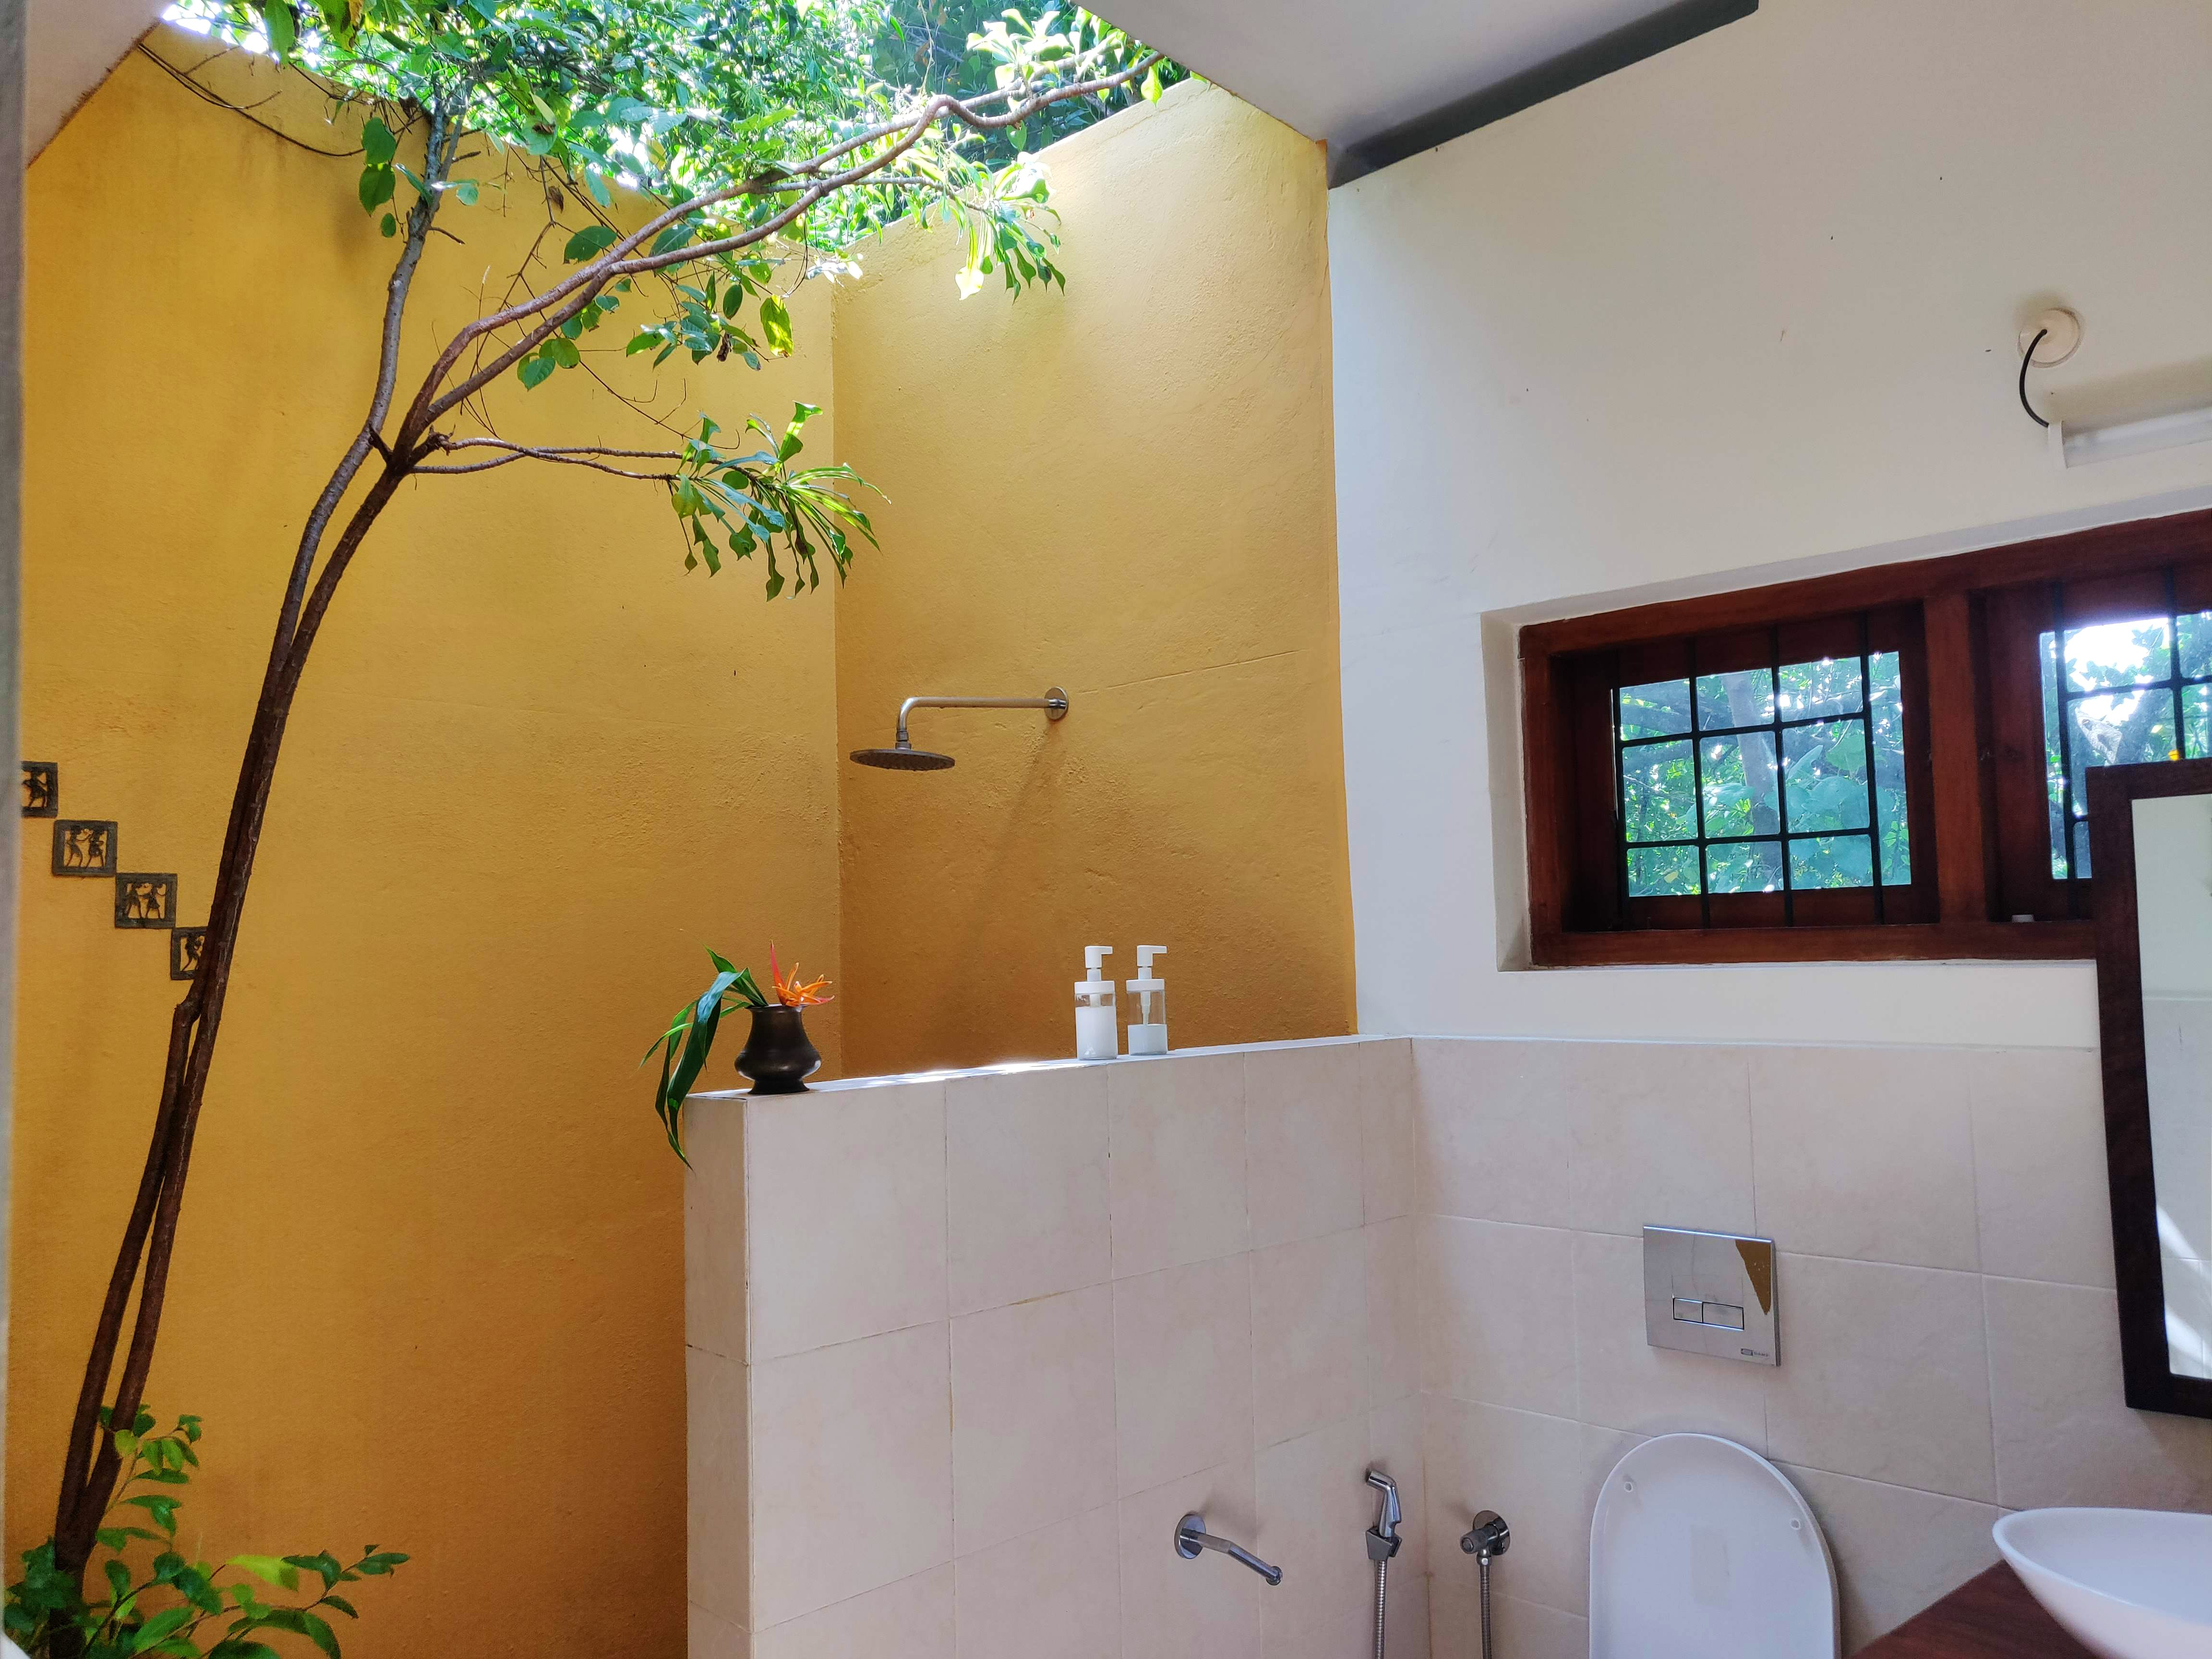 Room,Property,Bathroom,Interior design,Ceiling,House,Architecture,Real estate,Plant,Building